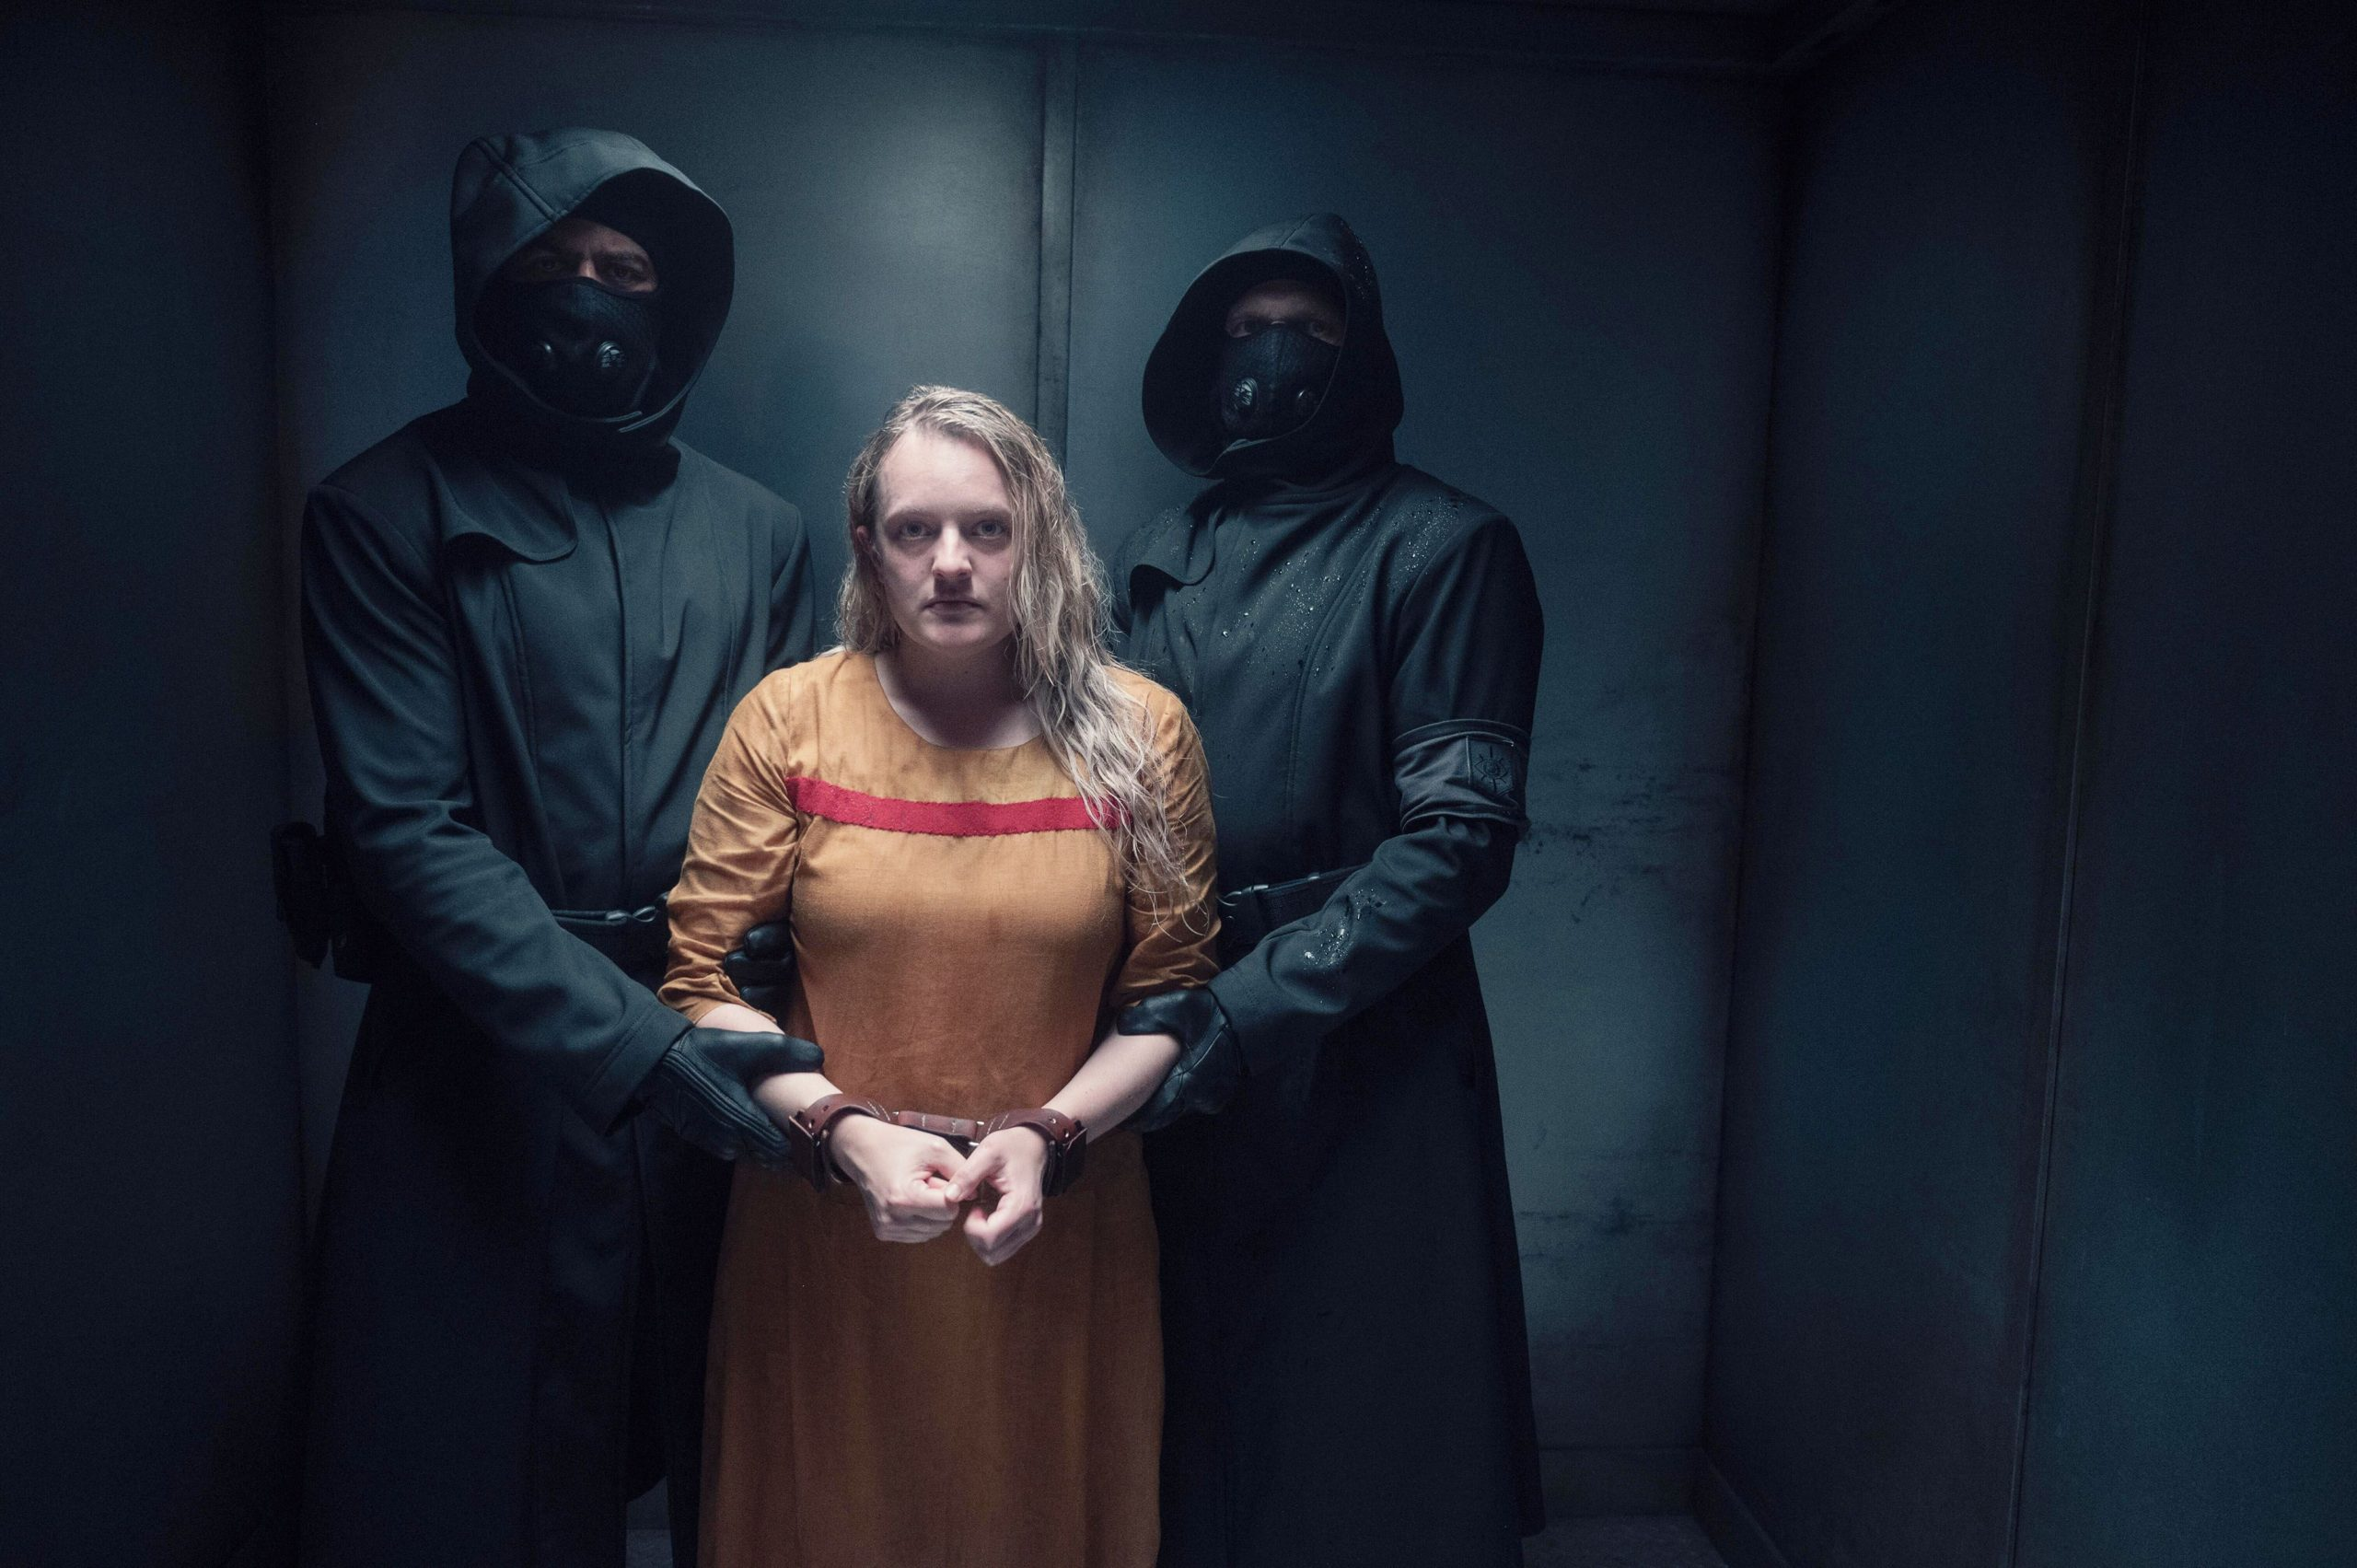 'The Handmaid's Tale' Season 5: Release Date Latest Revelations that You Need to Know